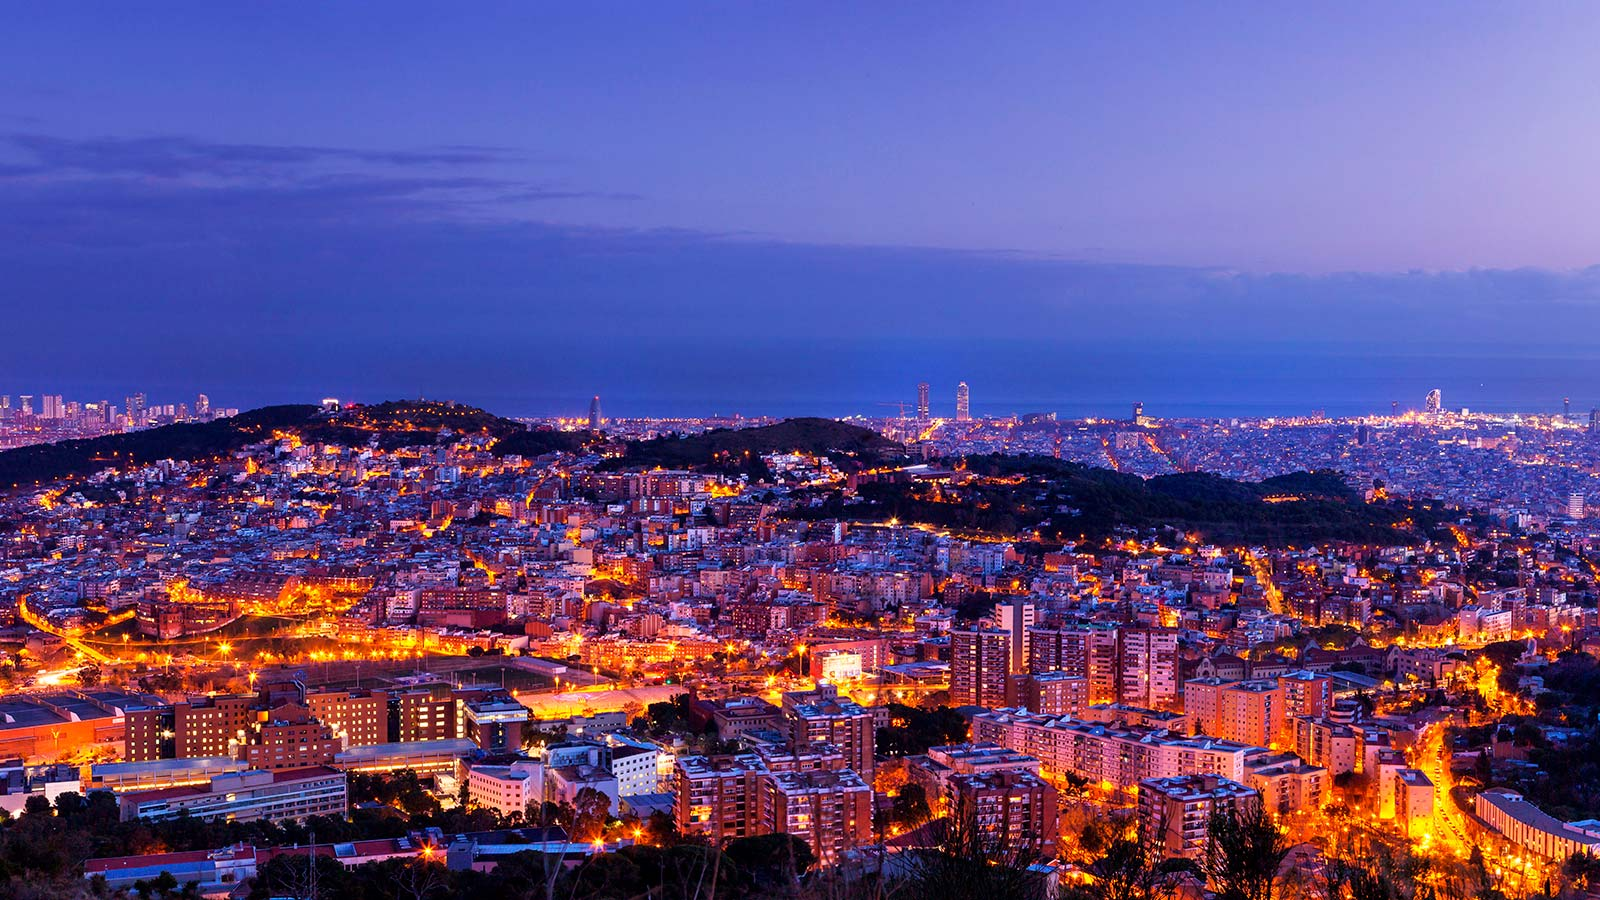 Barcelona skyline at dusk.